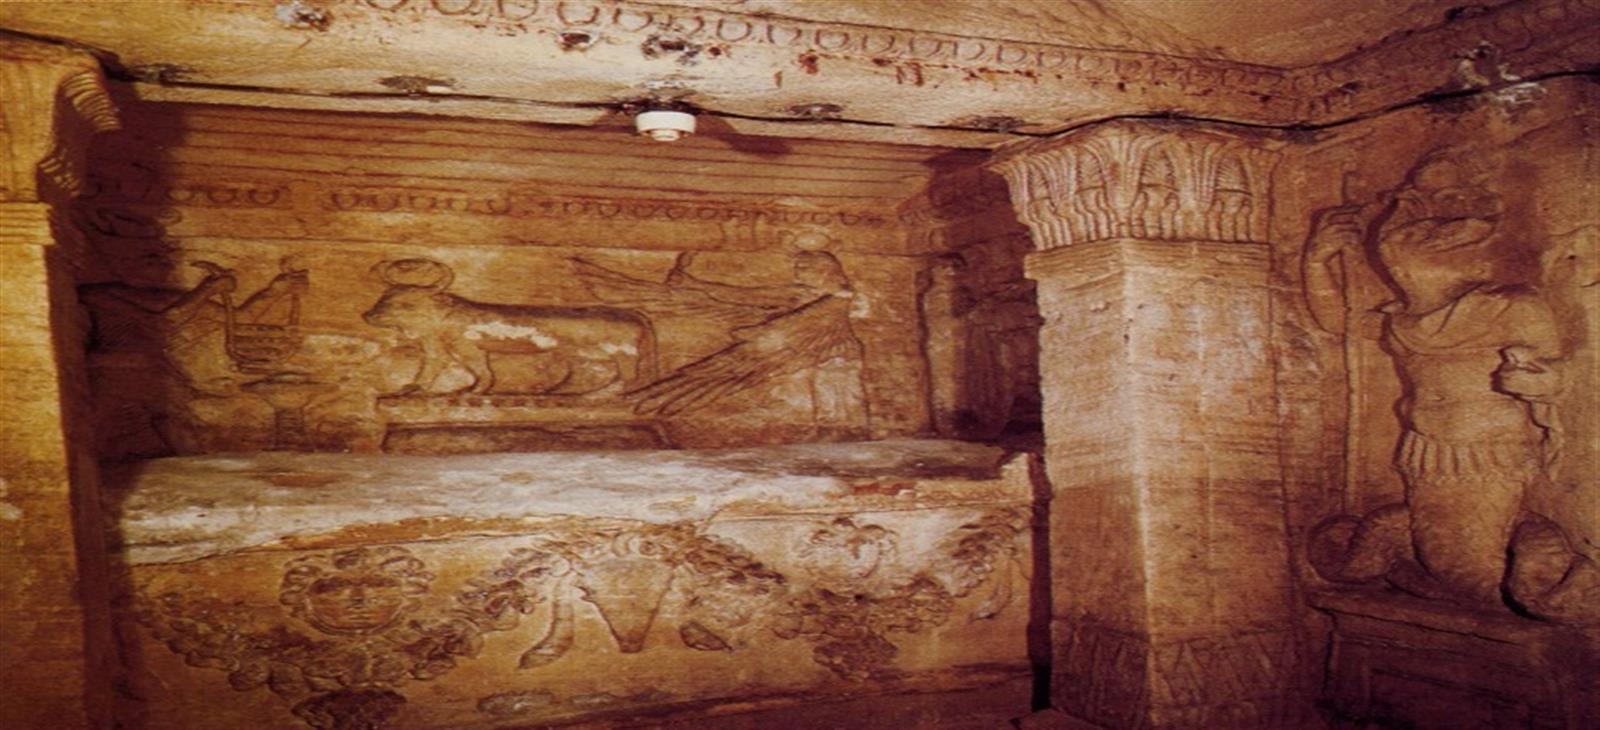 Inside Catacombs of Kom el Shoqafa